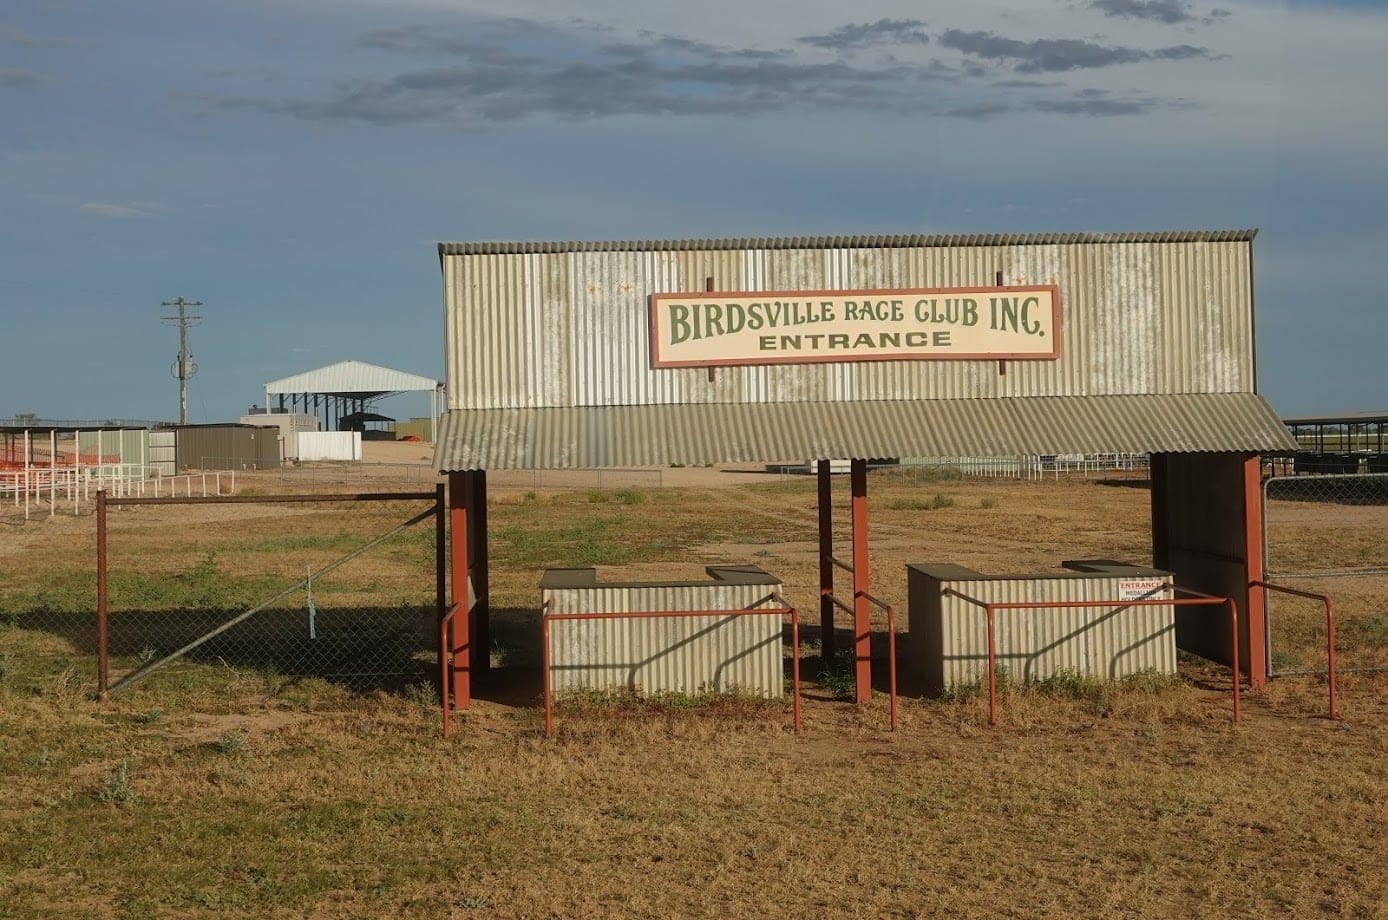 Birdsville Race Club Richard Hobbs